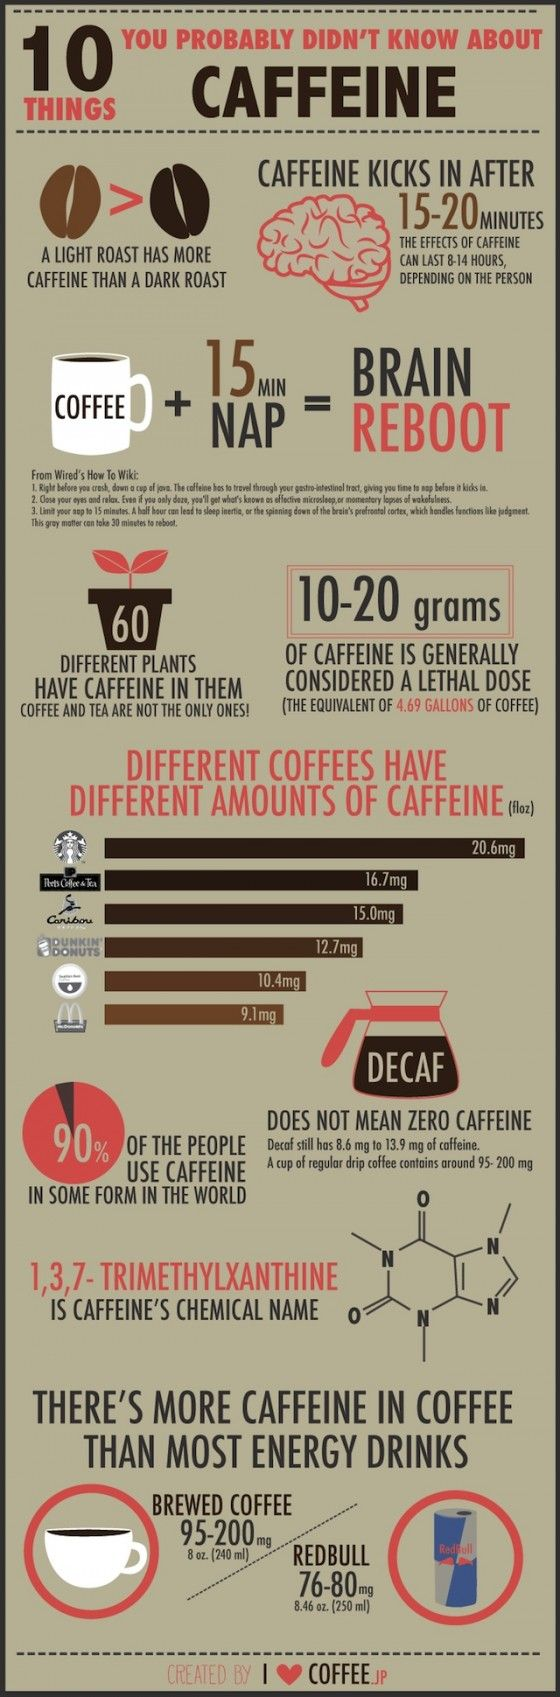 10 things you probably didn't know about caffeine get the right partners. http://effectiveconnect.com